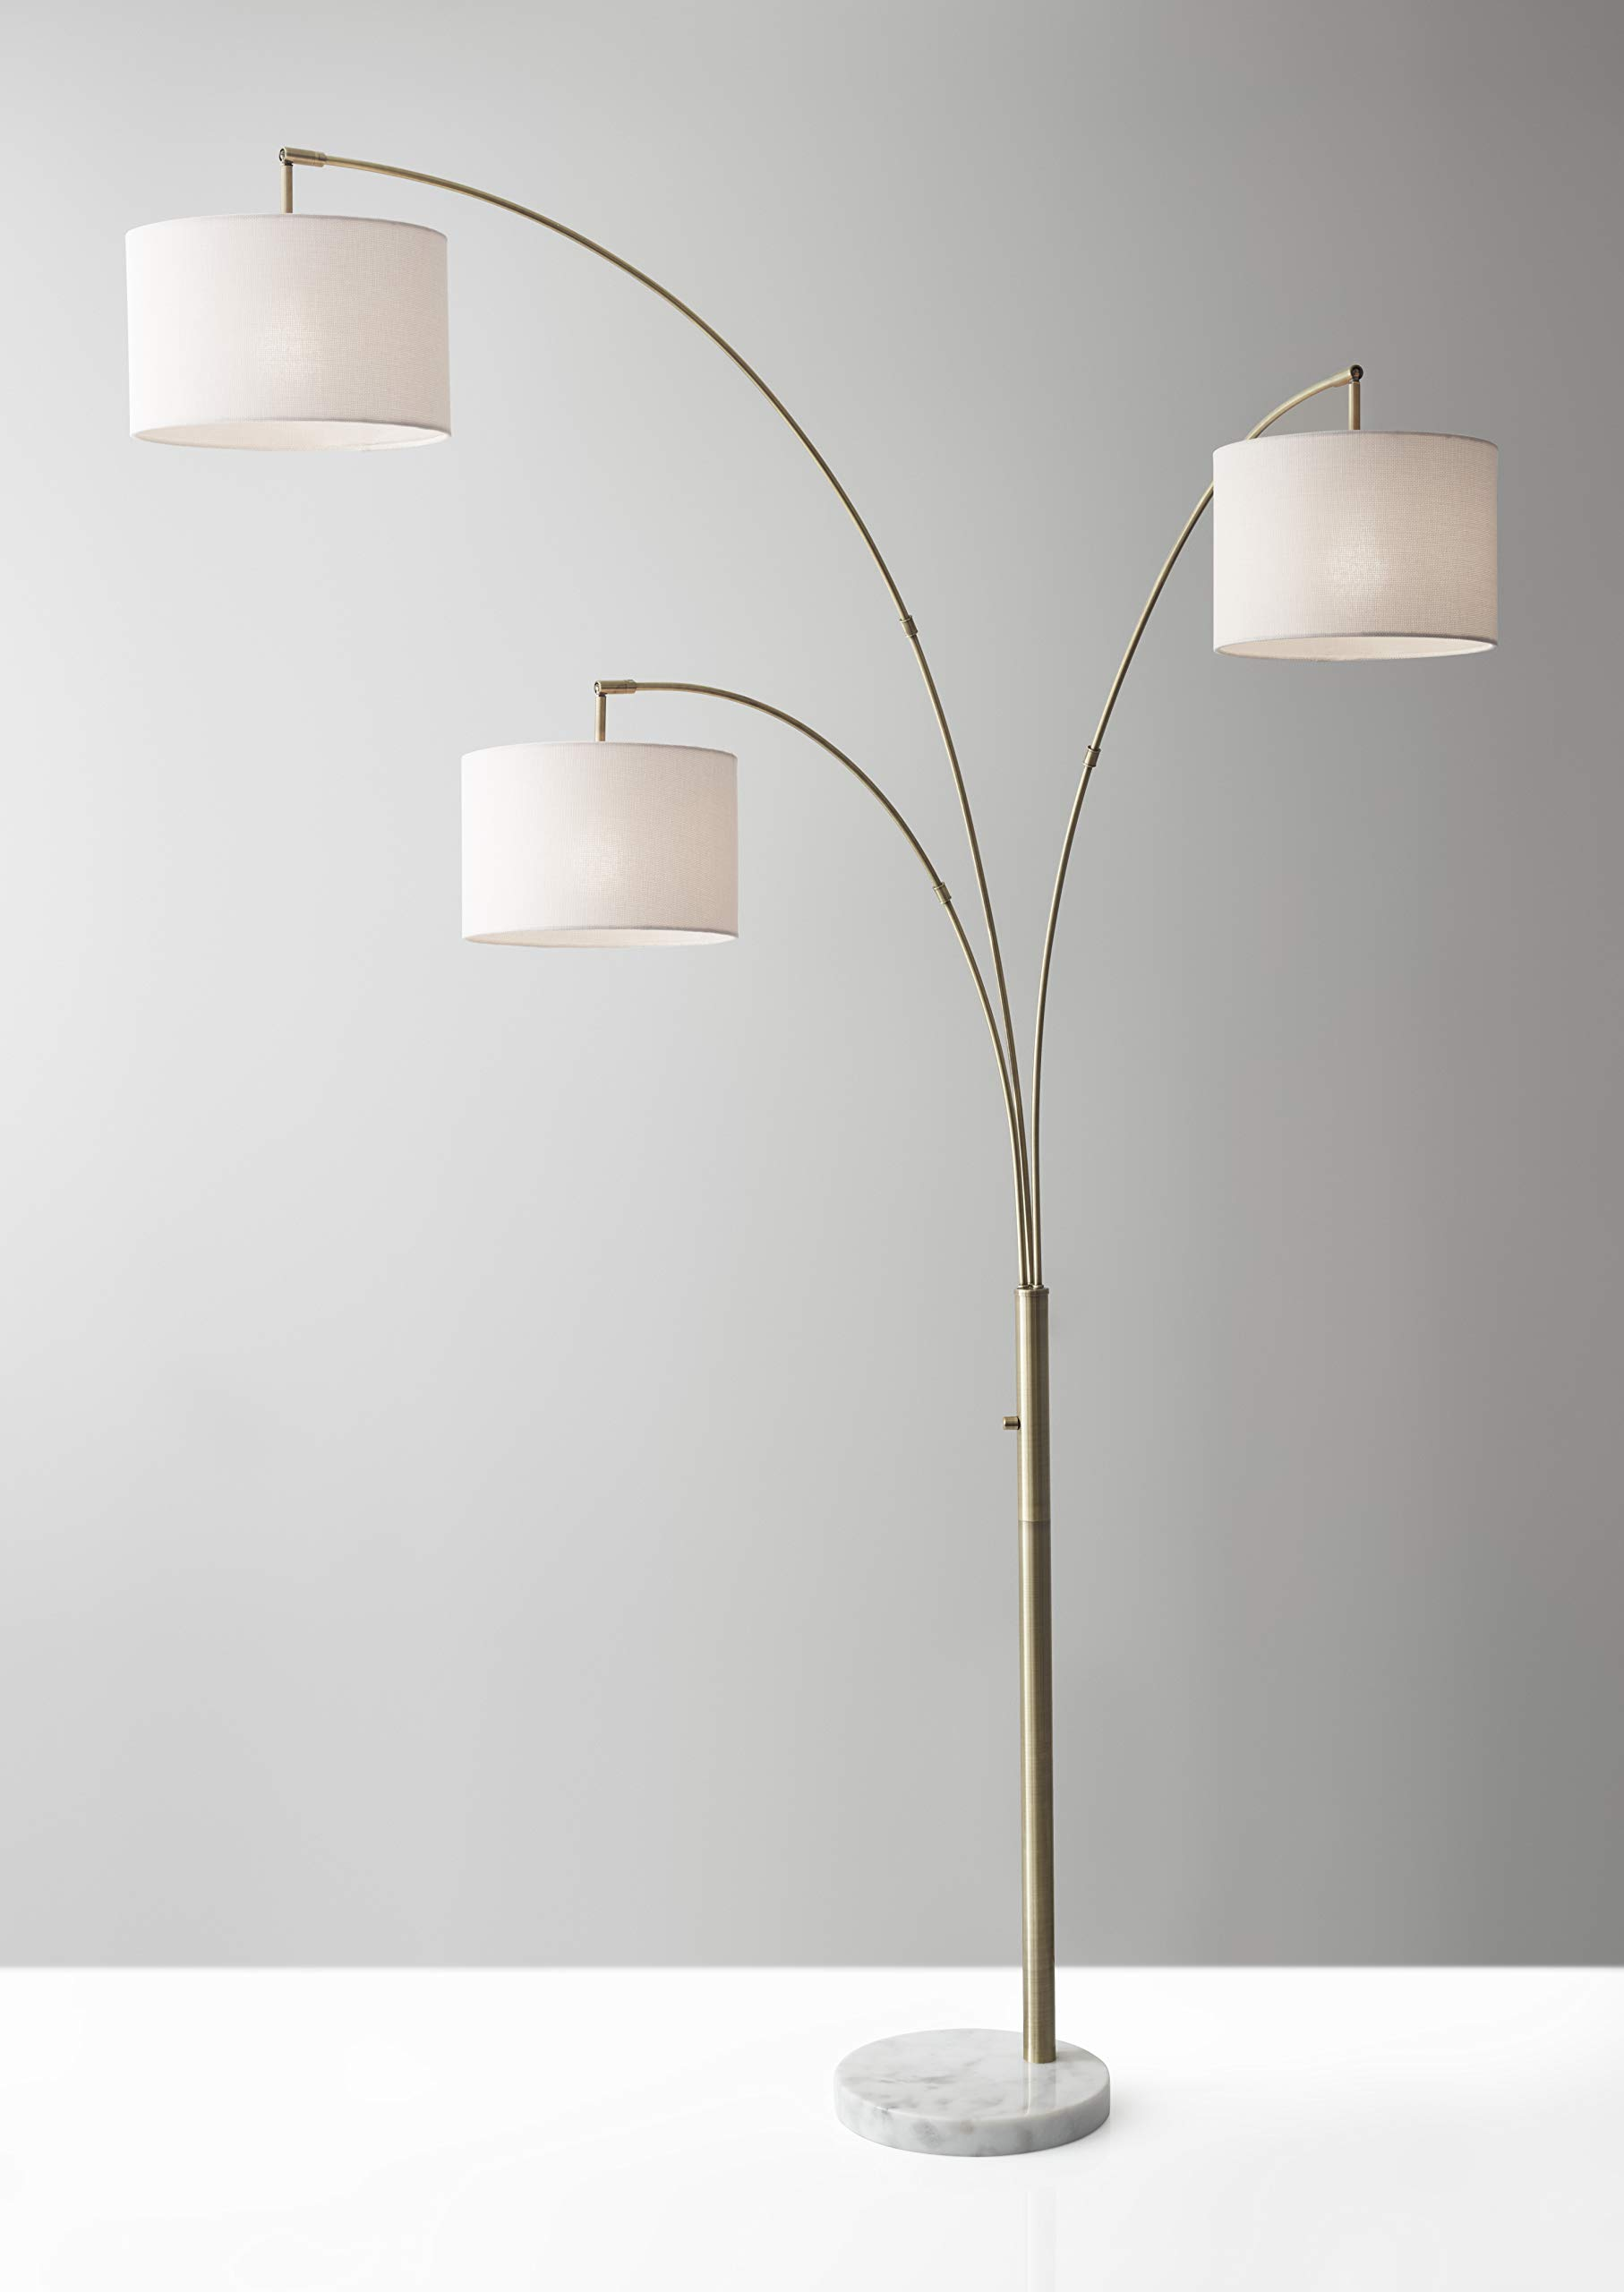 Adesso-4250-21-Bowery-3-Arm-Arc-Lamp-Brass-Antique-Bronze 15 Unique Artistic Floor Lamps to Light Your Bedroom